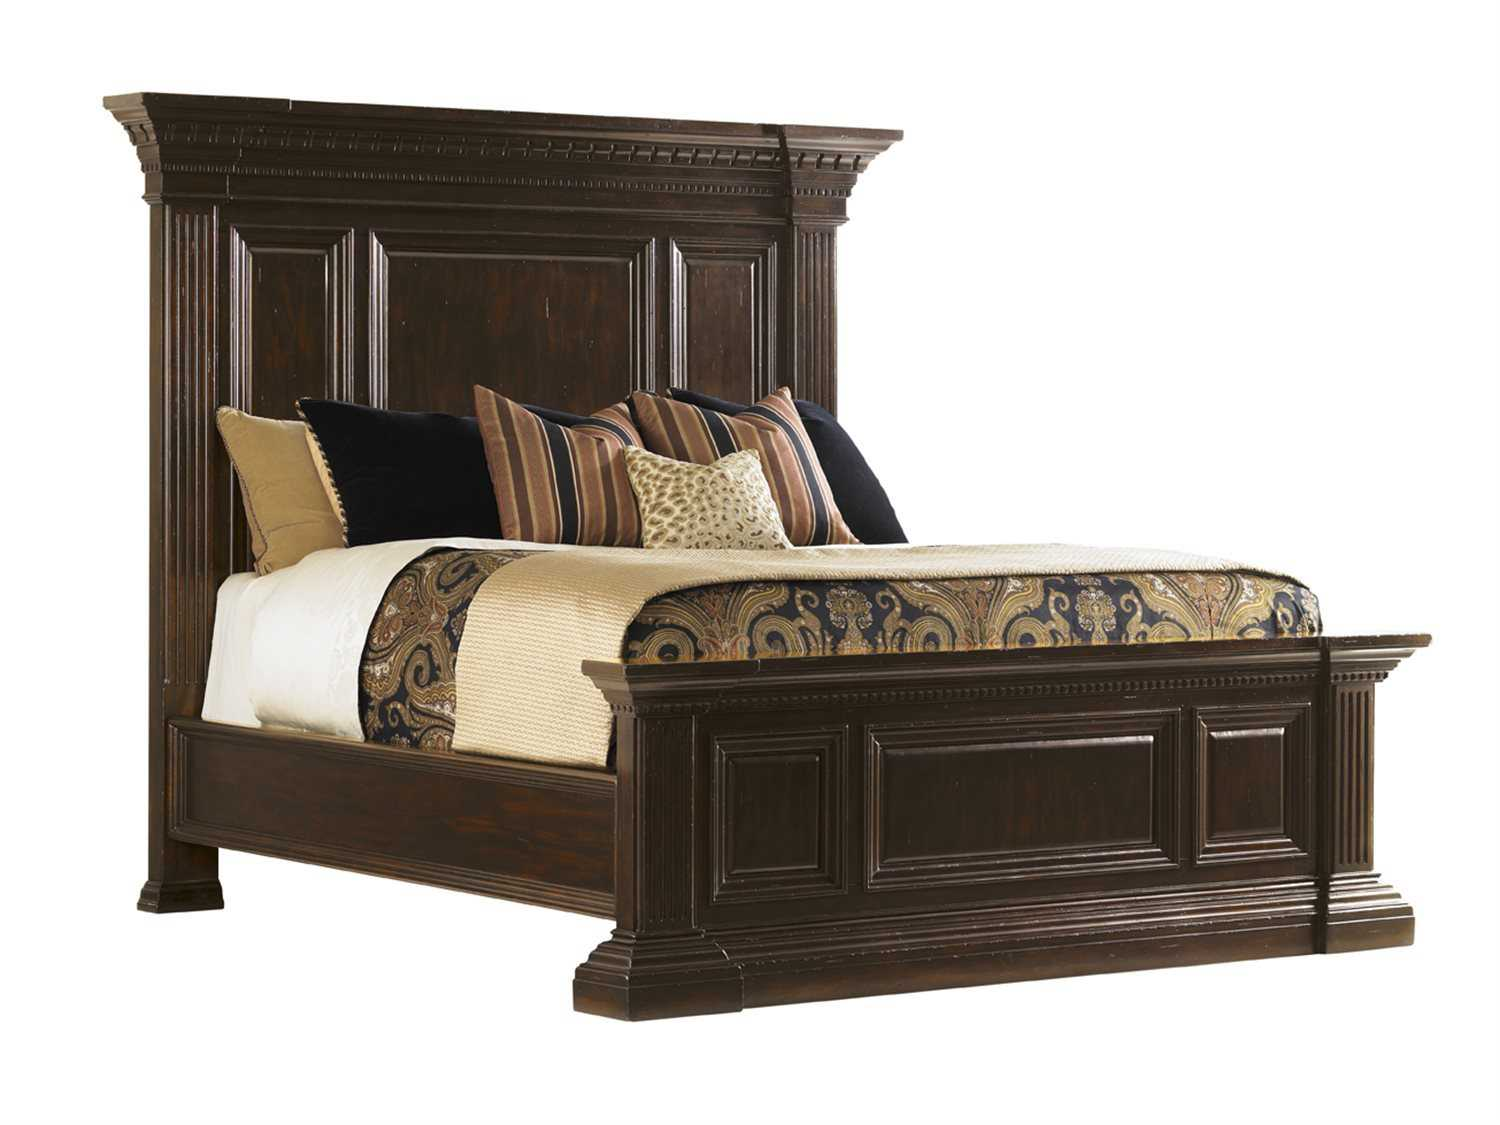 tommy bahama island traditions sutton place bedroom set to010548144cset. Black Bedroom Furniture Sets. Home Design Ideas